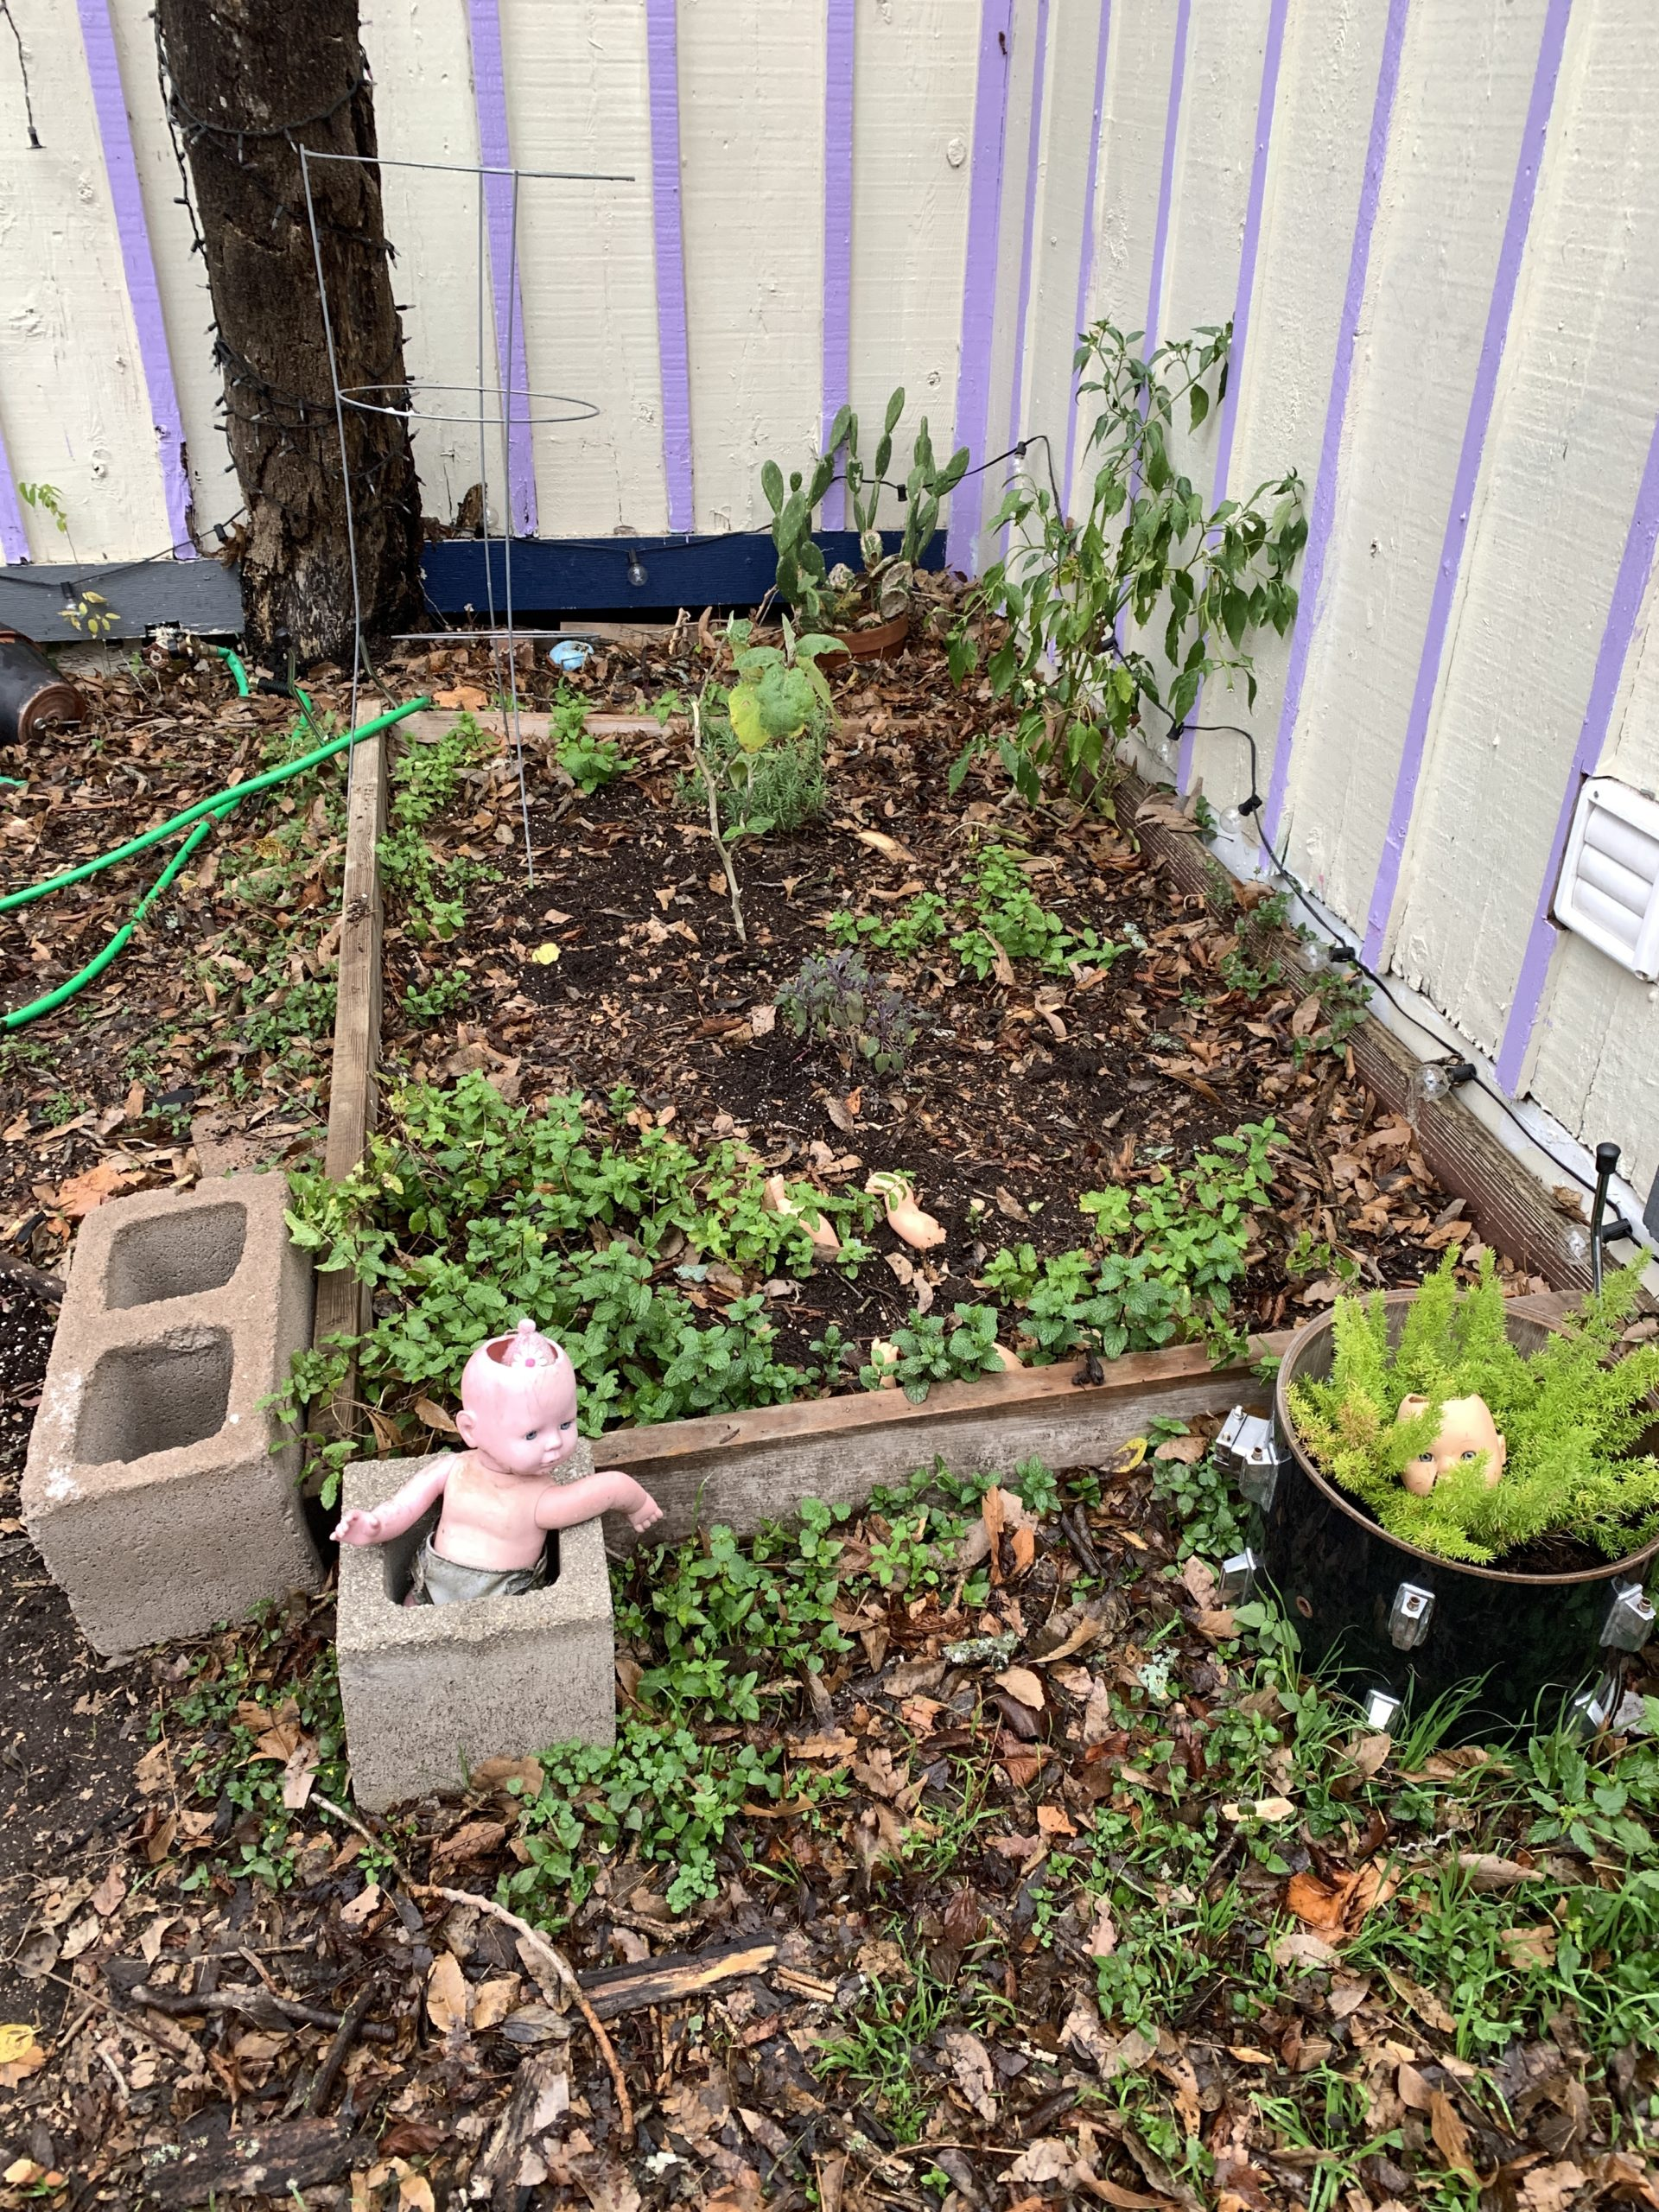 A small messy little garden with container plans, cinder blocks, and doll parts.